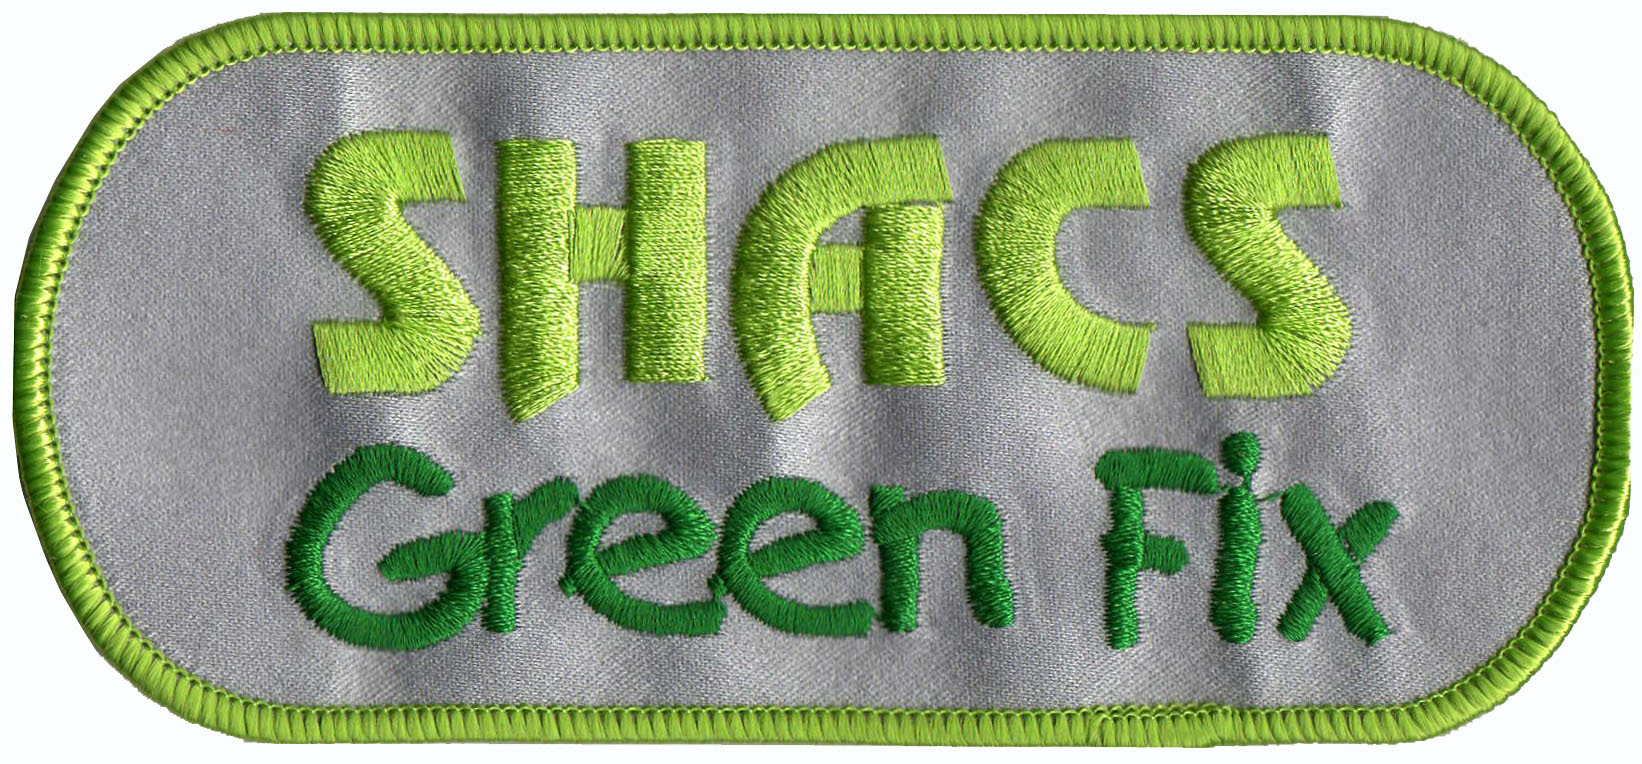 Name Patch Custom Embroidered Patches For Work Uniforms And Sports